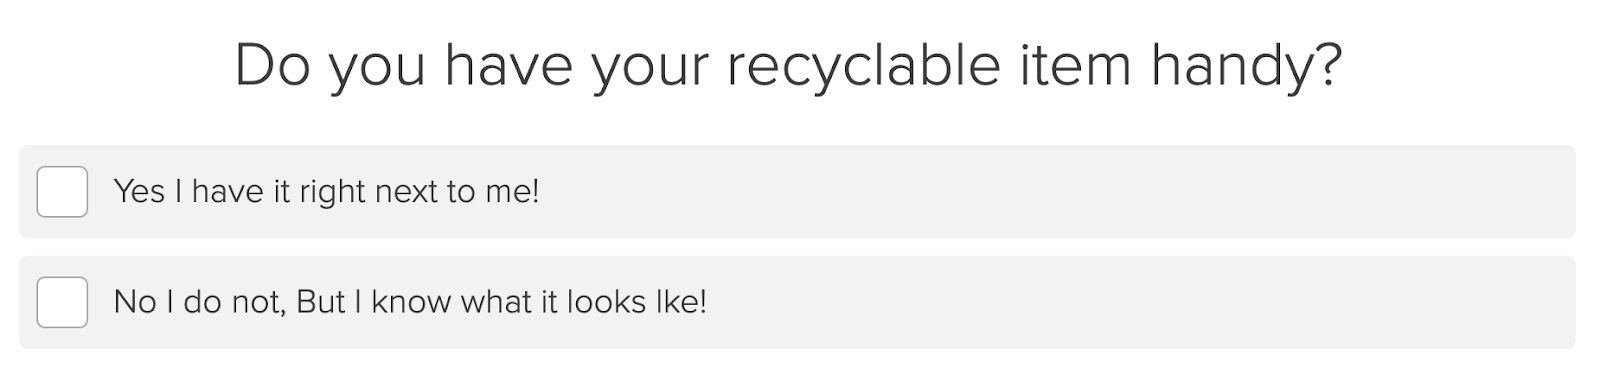 recycling question example